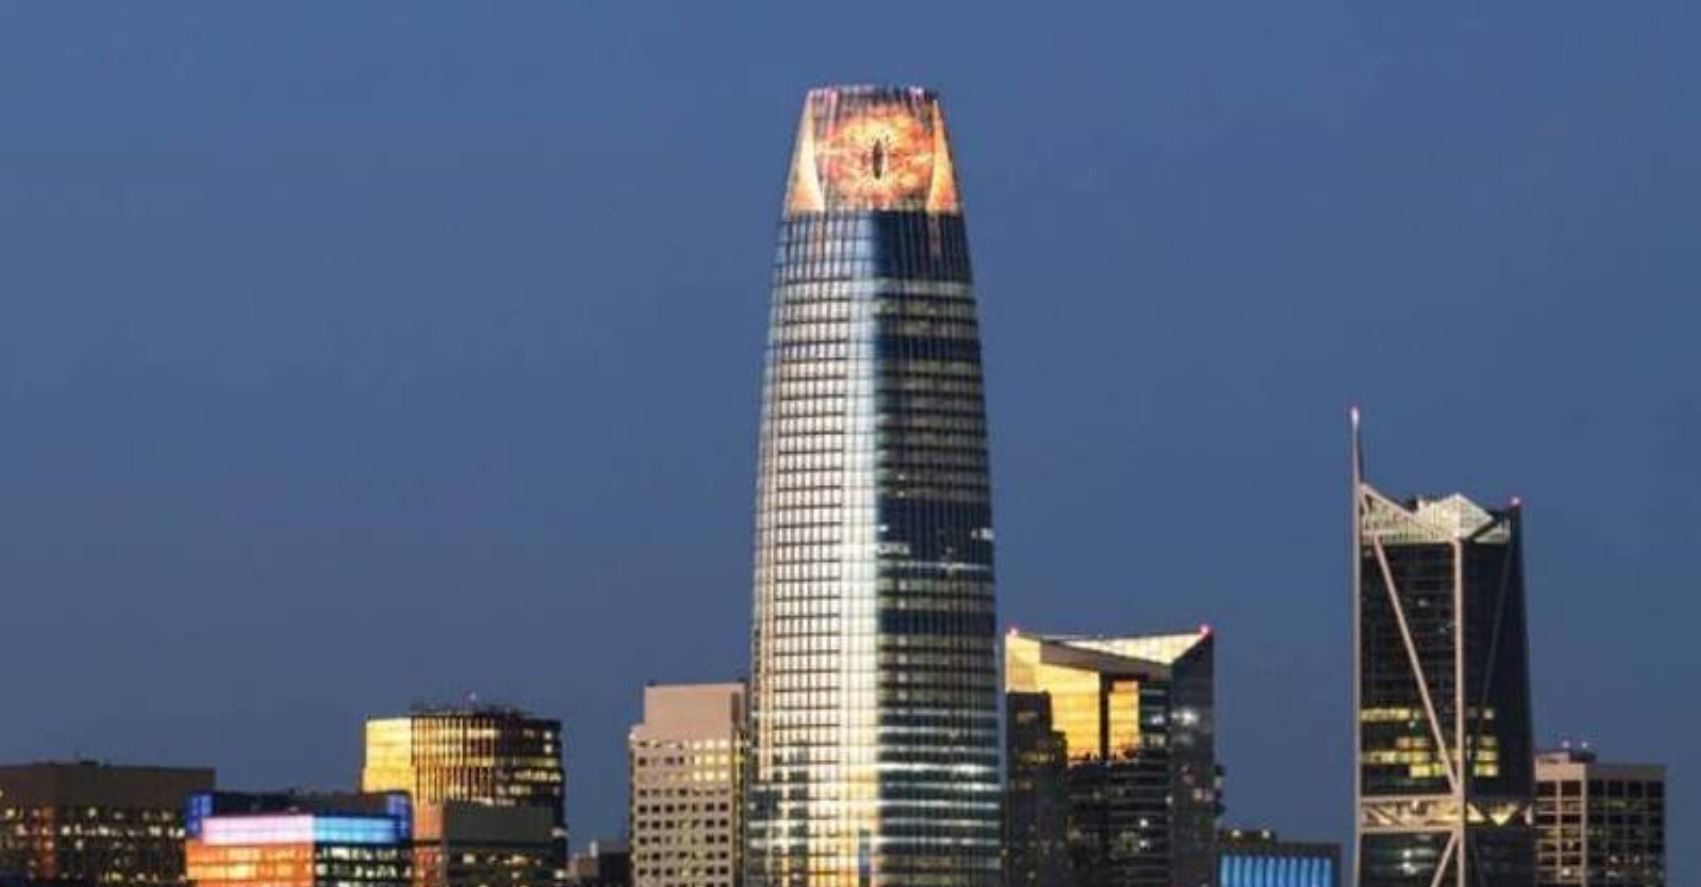 Salesforce: The Petition To Turn The Salesforce Tower Into The Eye Of